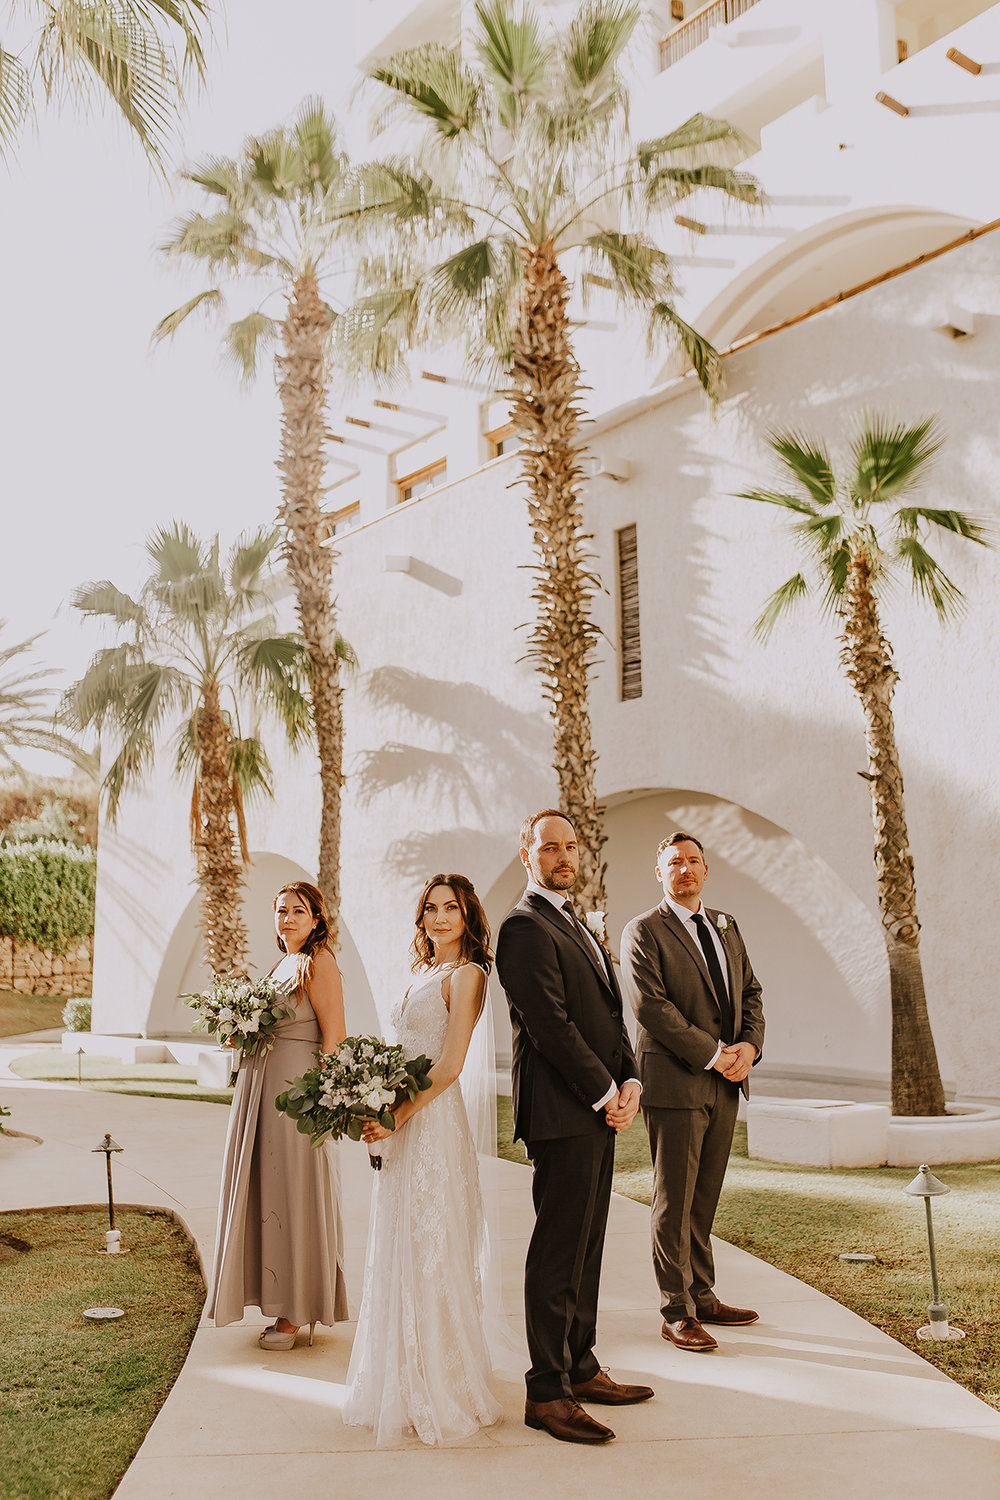 Lindsei+James_cabo_wedding_425.jpg